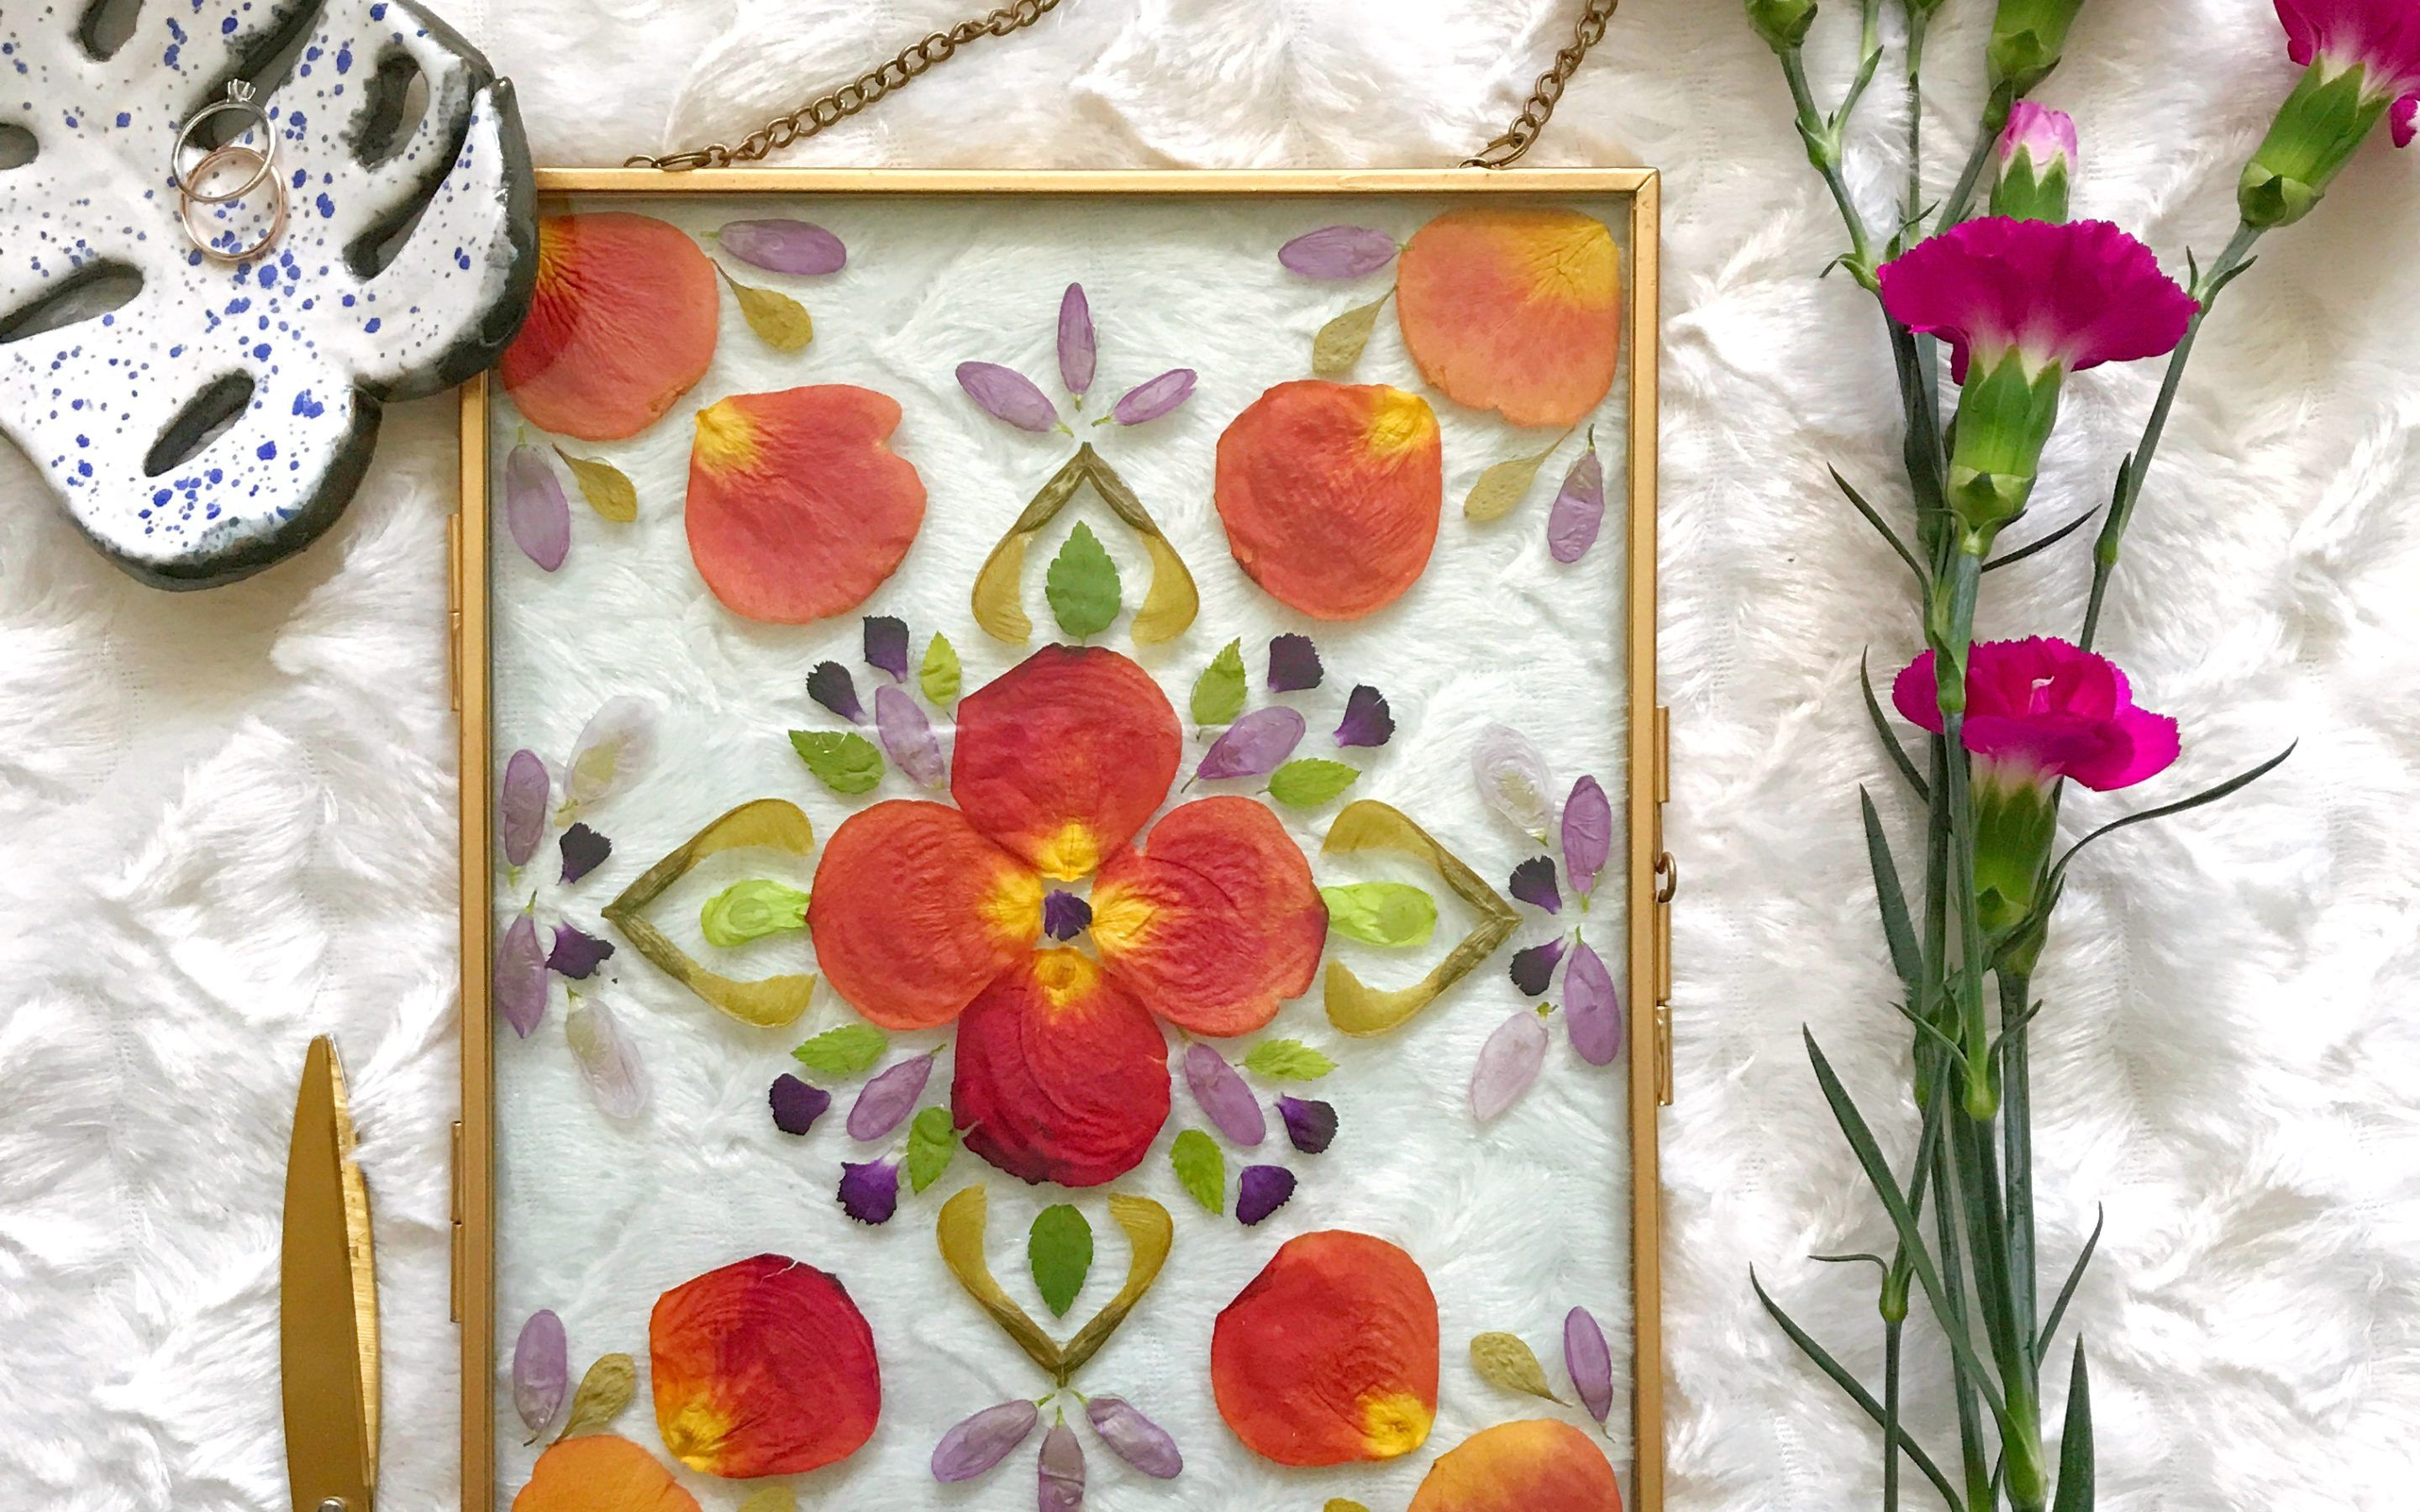 Diy pressed flower art in a floating frame with images